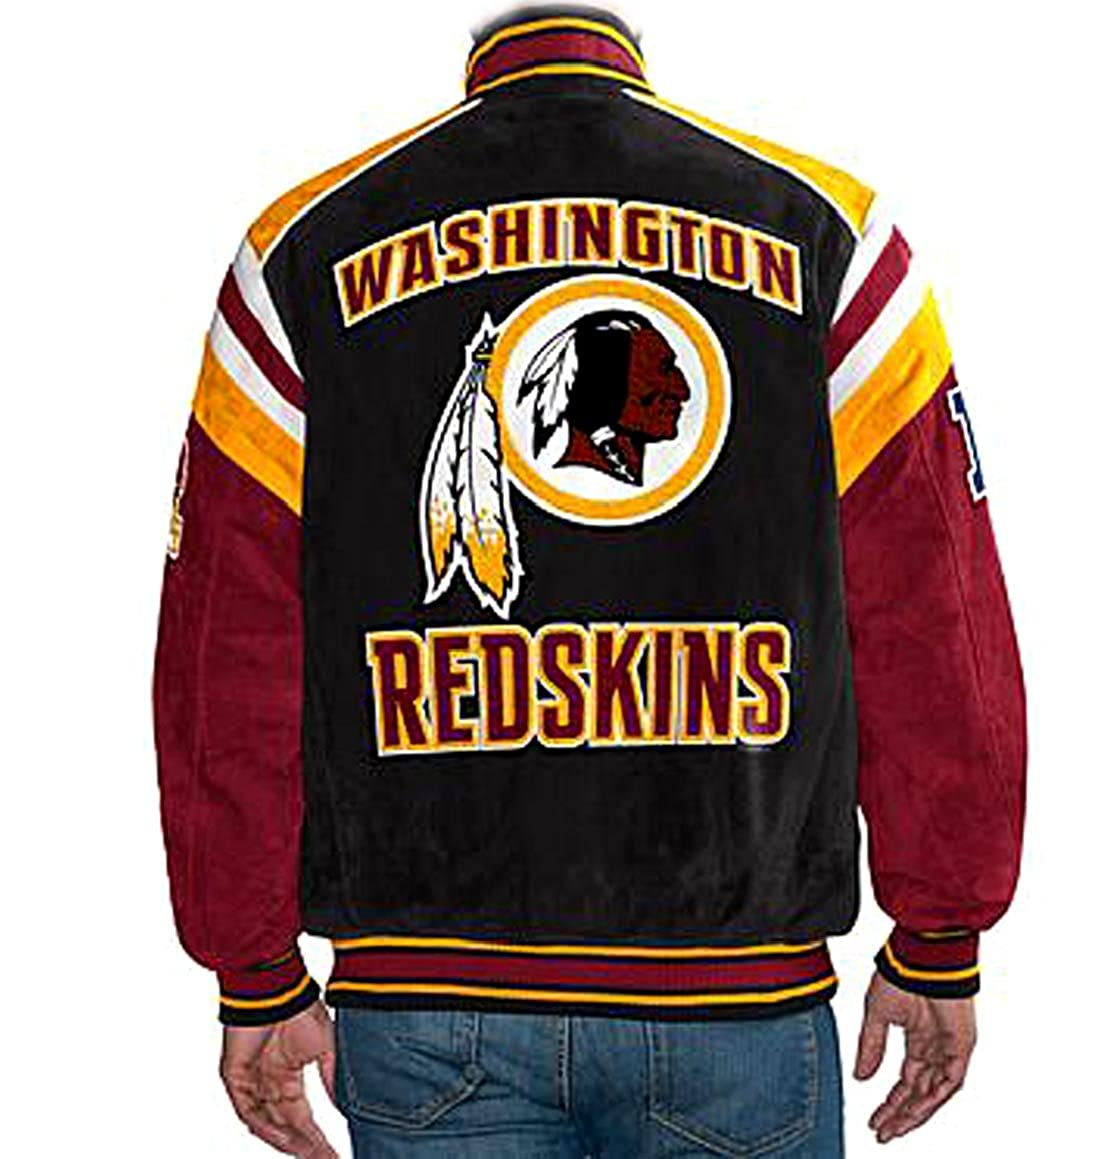 watch 0321c 688a5 Washington Redskins NFL Suede Leather Jacket